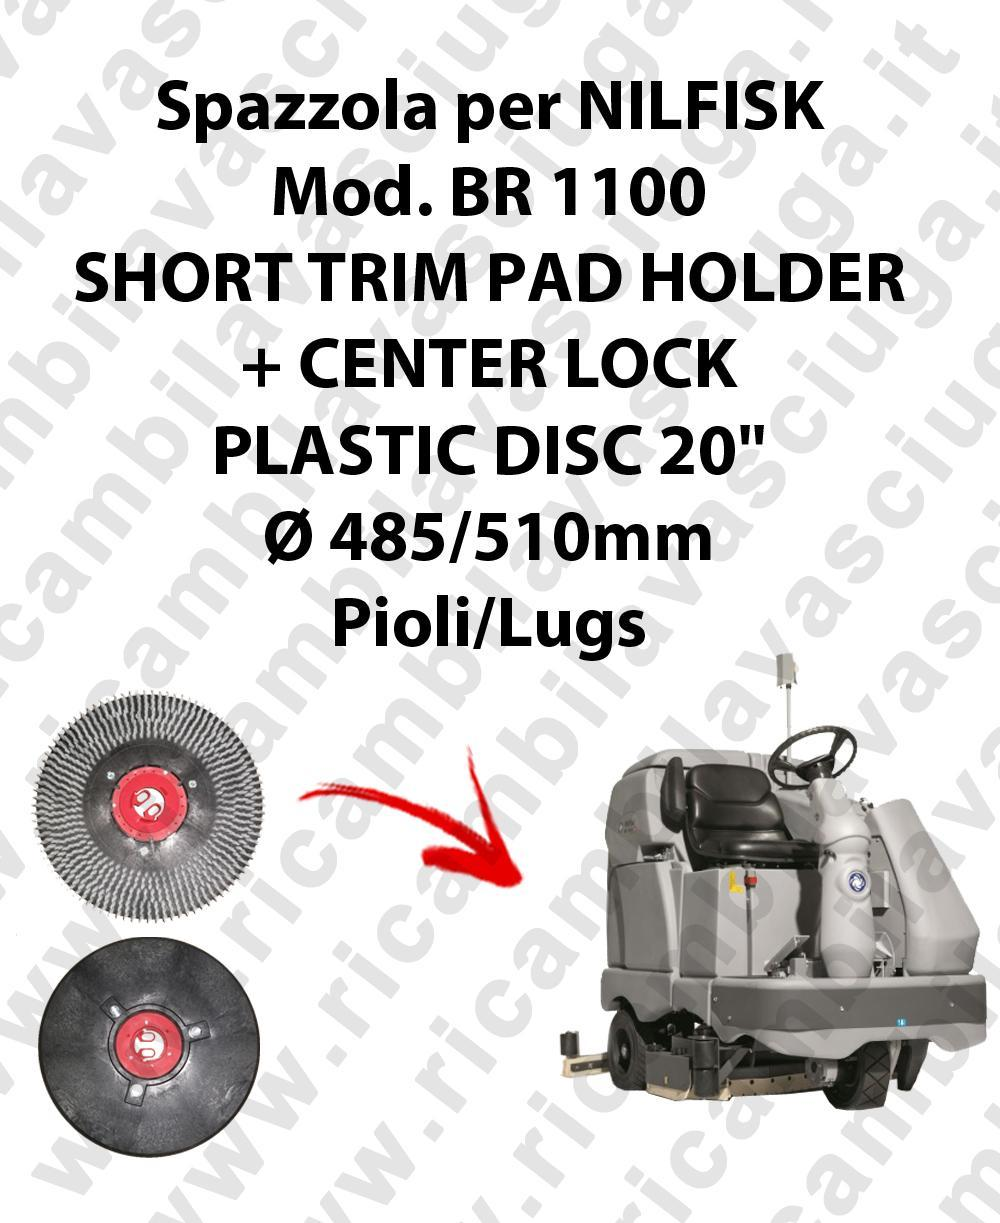 SHORT TRIM PAD HOLDER + CENTERLOCK for scrubber dryer NILFISK mod. BR 1100